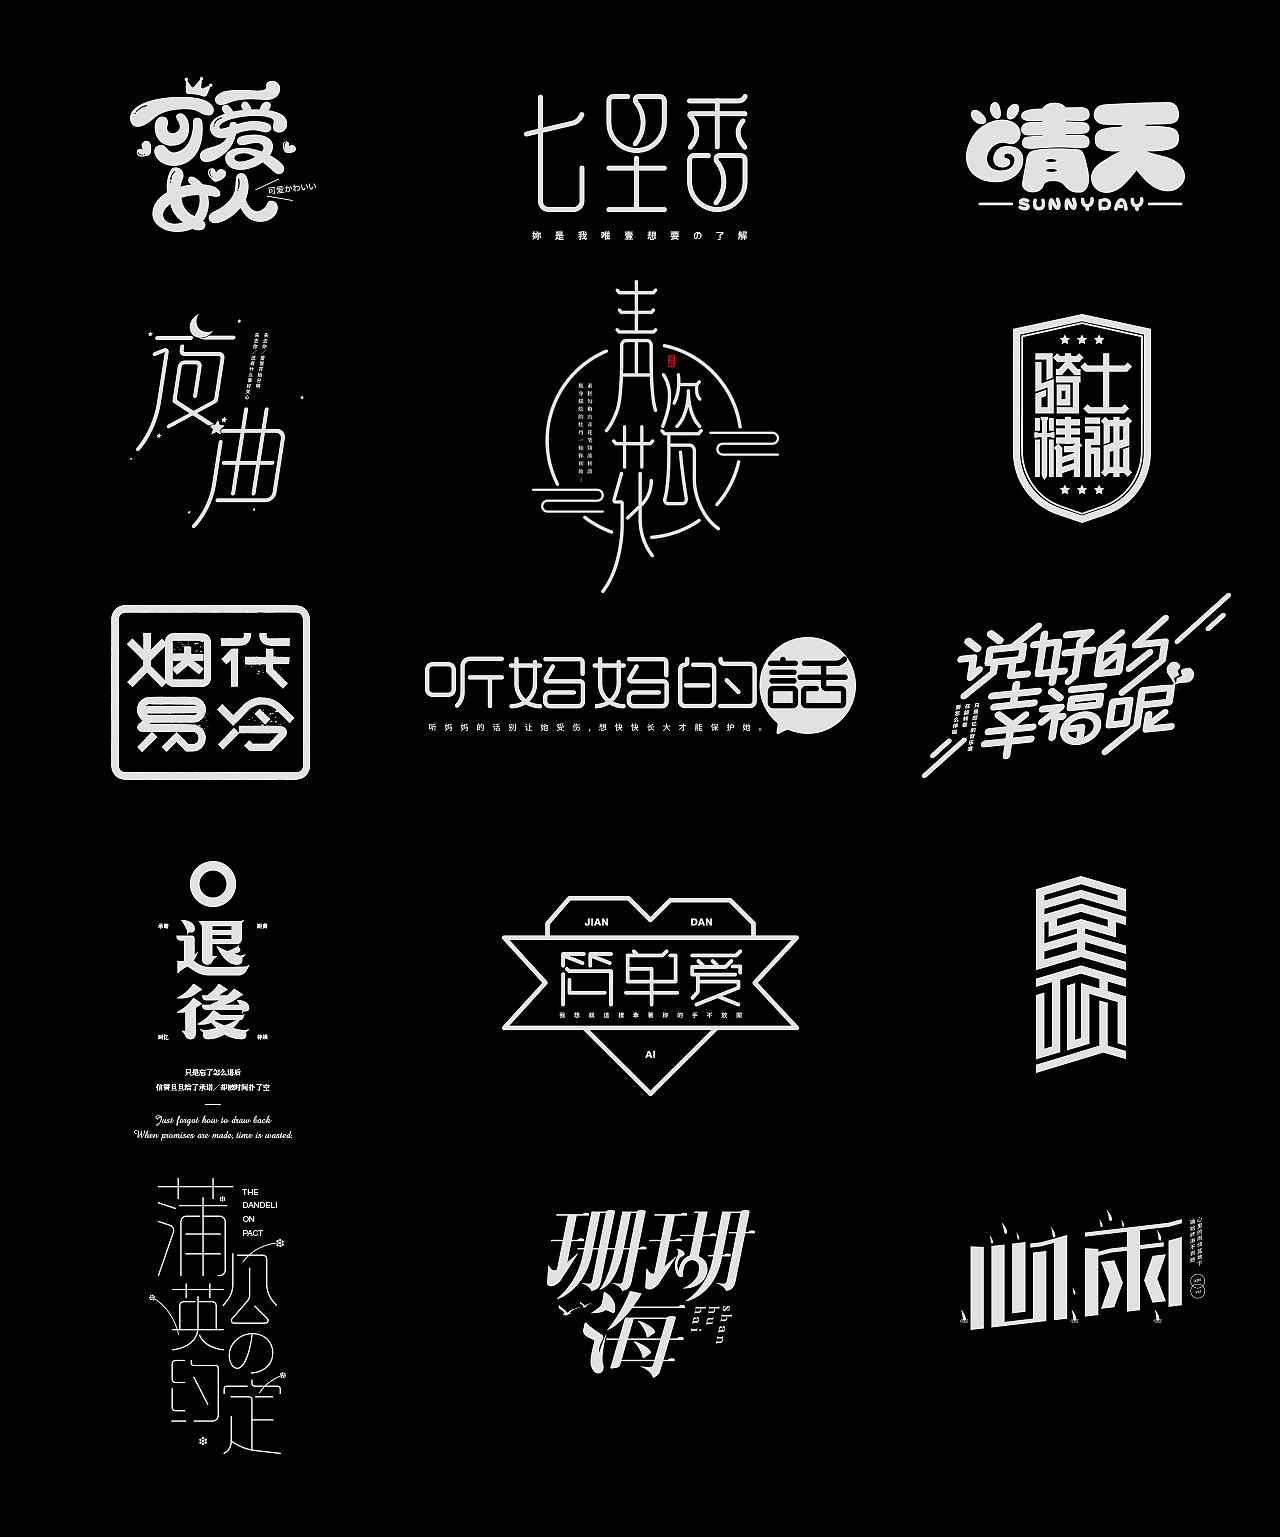 Logos-The Jay Chou songs of 2020